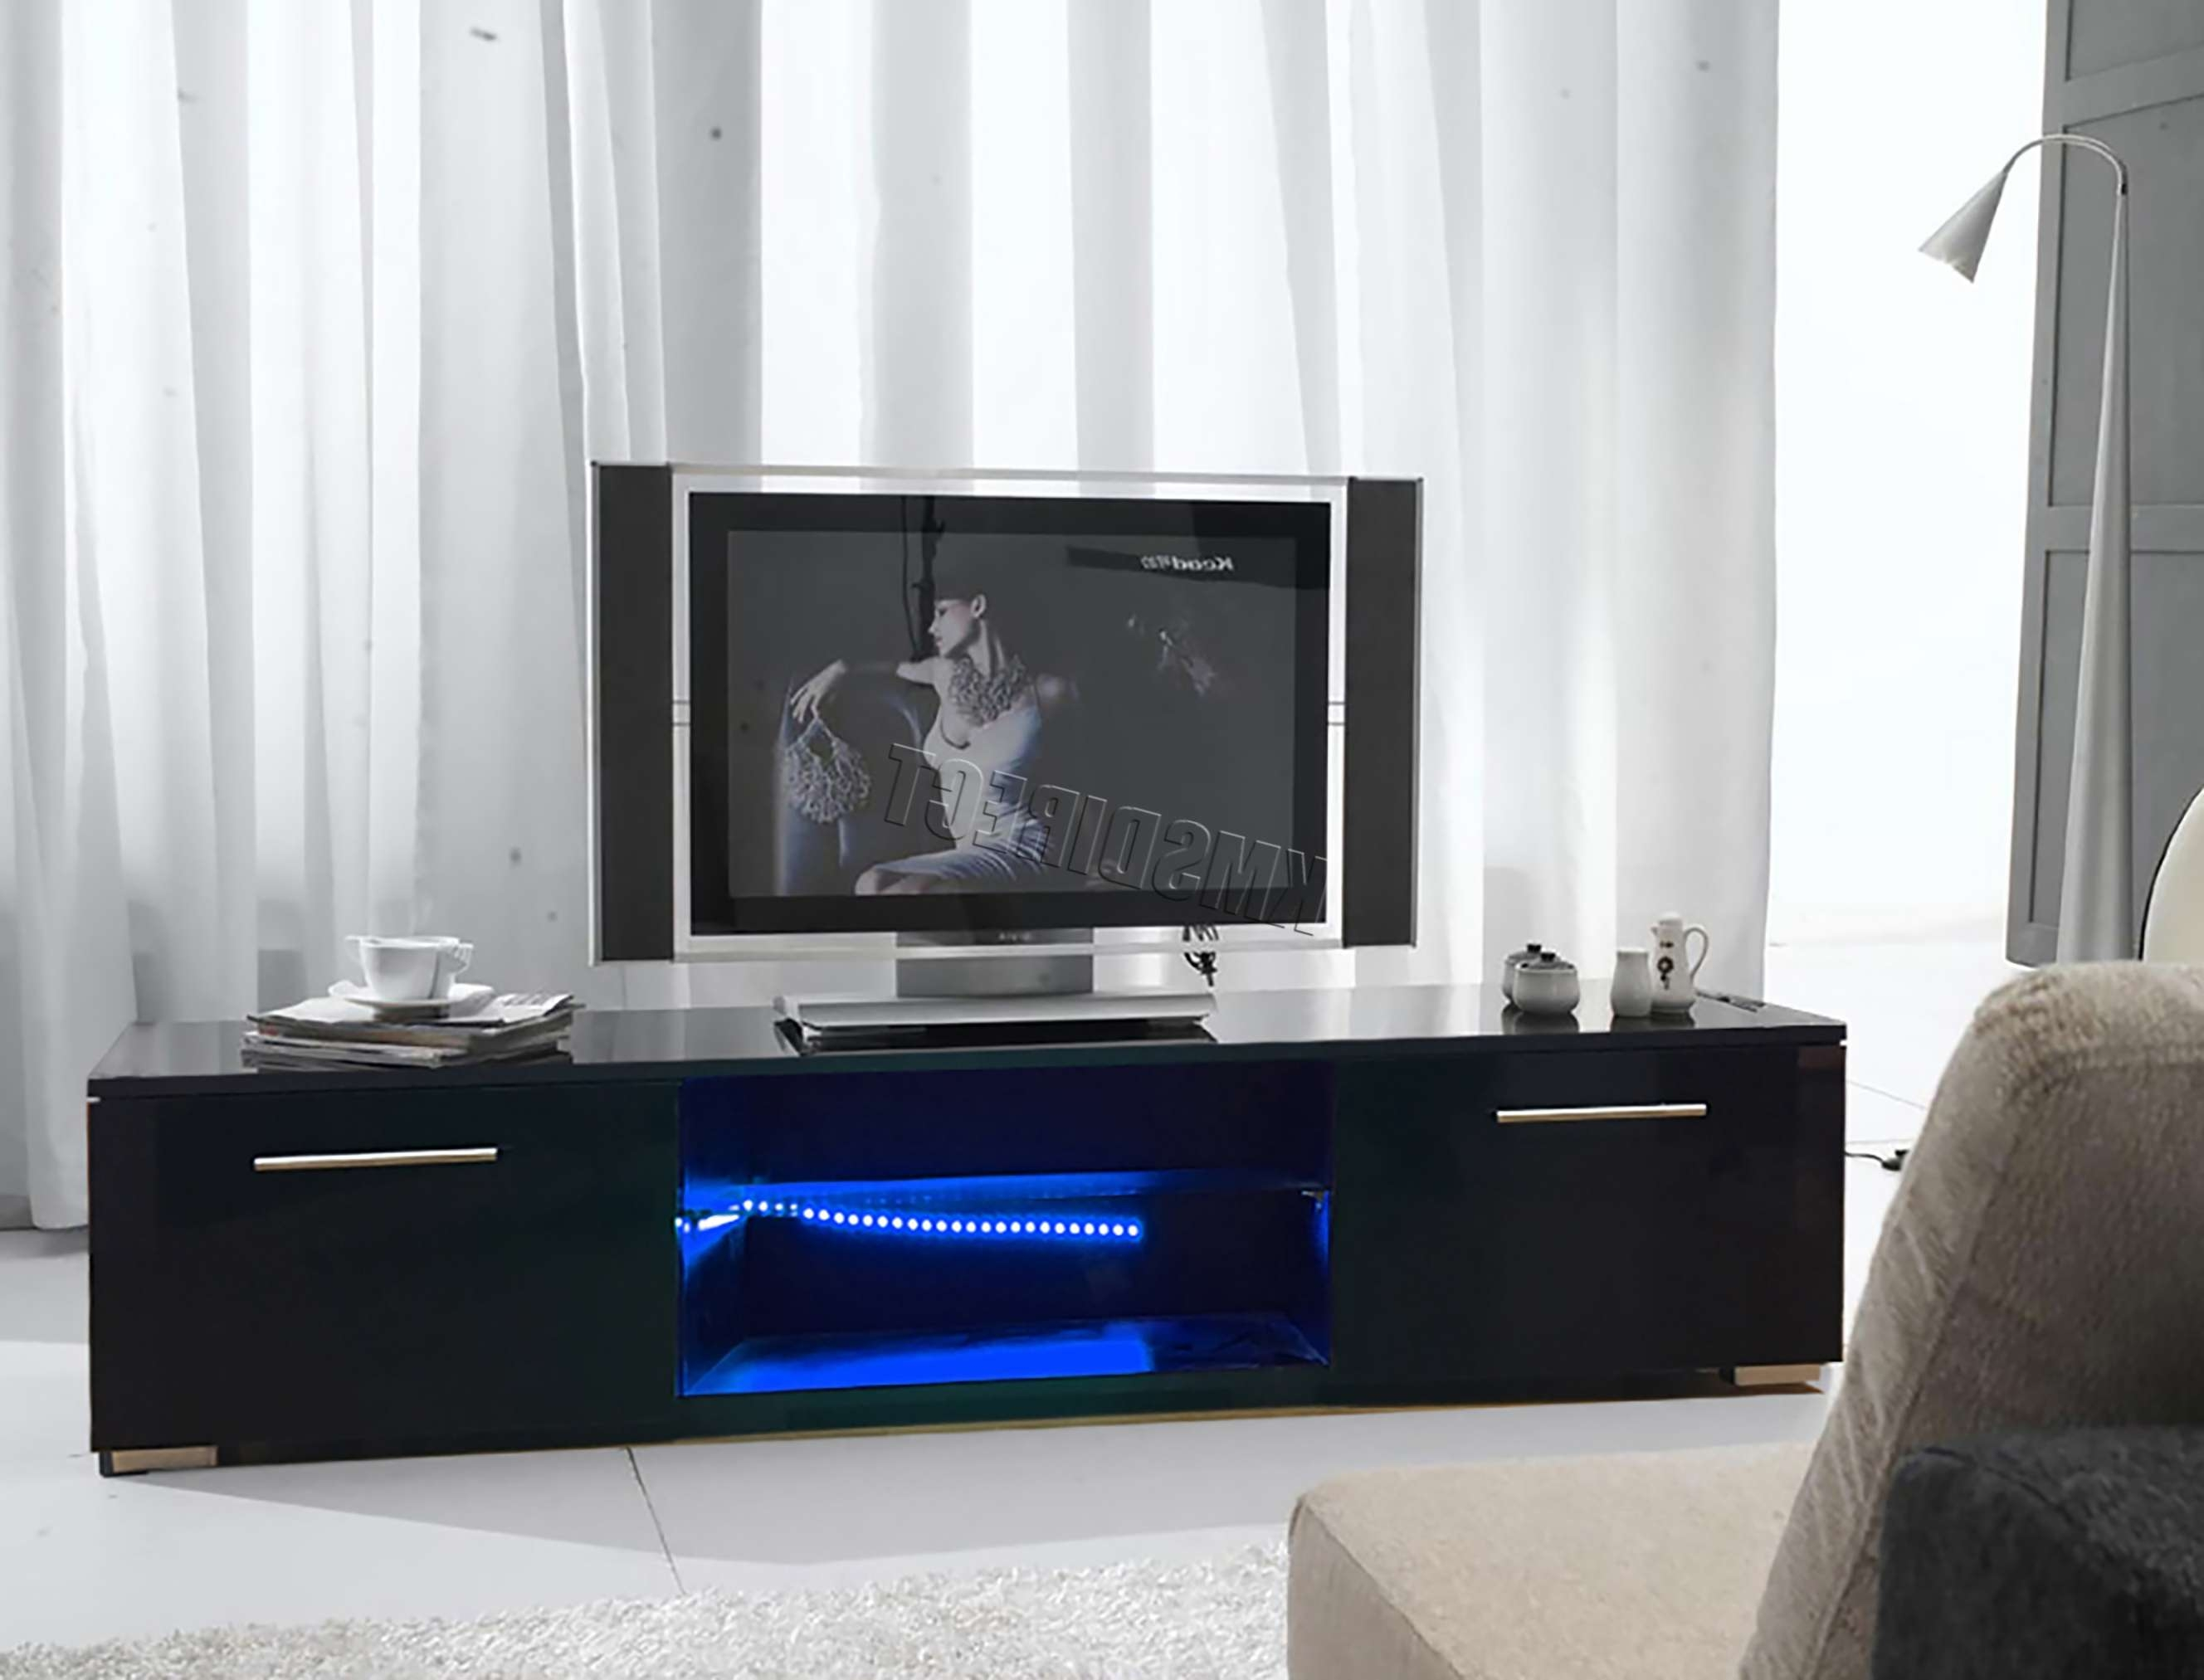 Foxhunter Modern High Gloss Matt Tv Cabinet Unit Stand Black Rgb Pertaining To Tv Cabinets Black High Gloss (View 4 of 20)